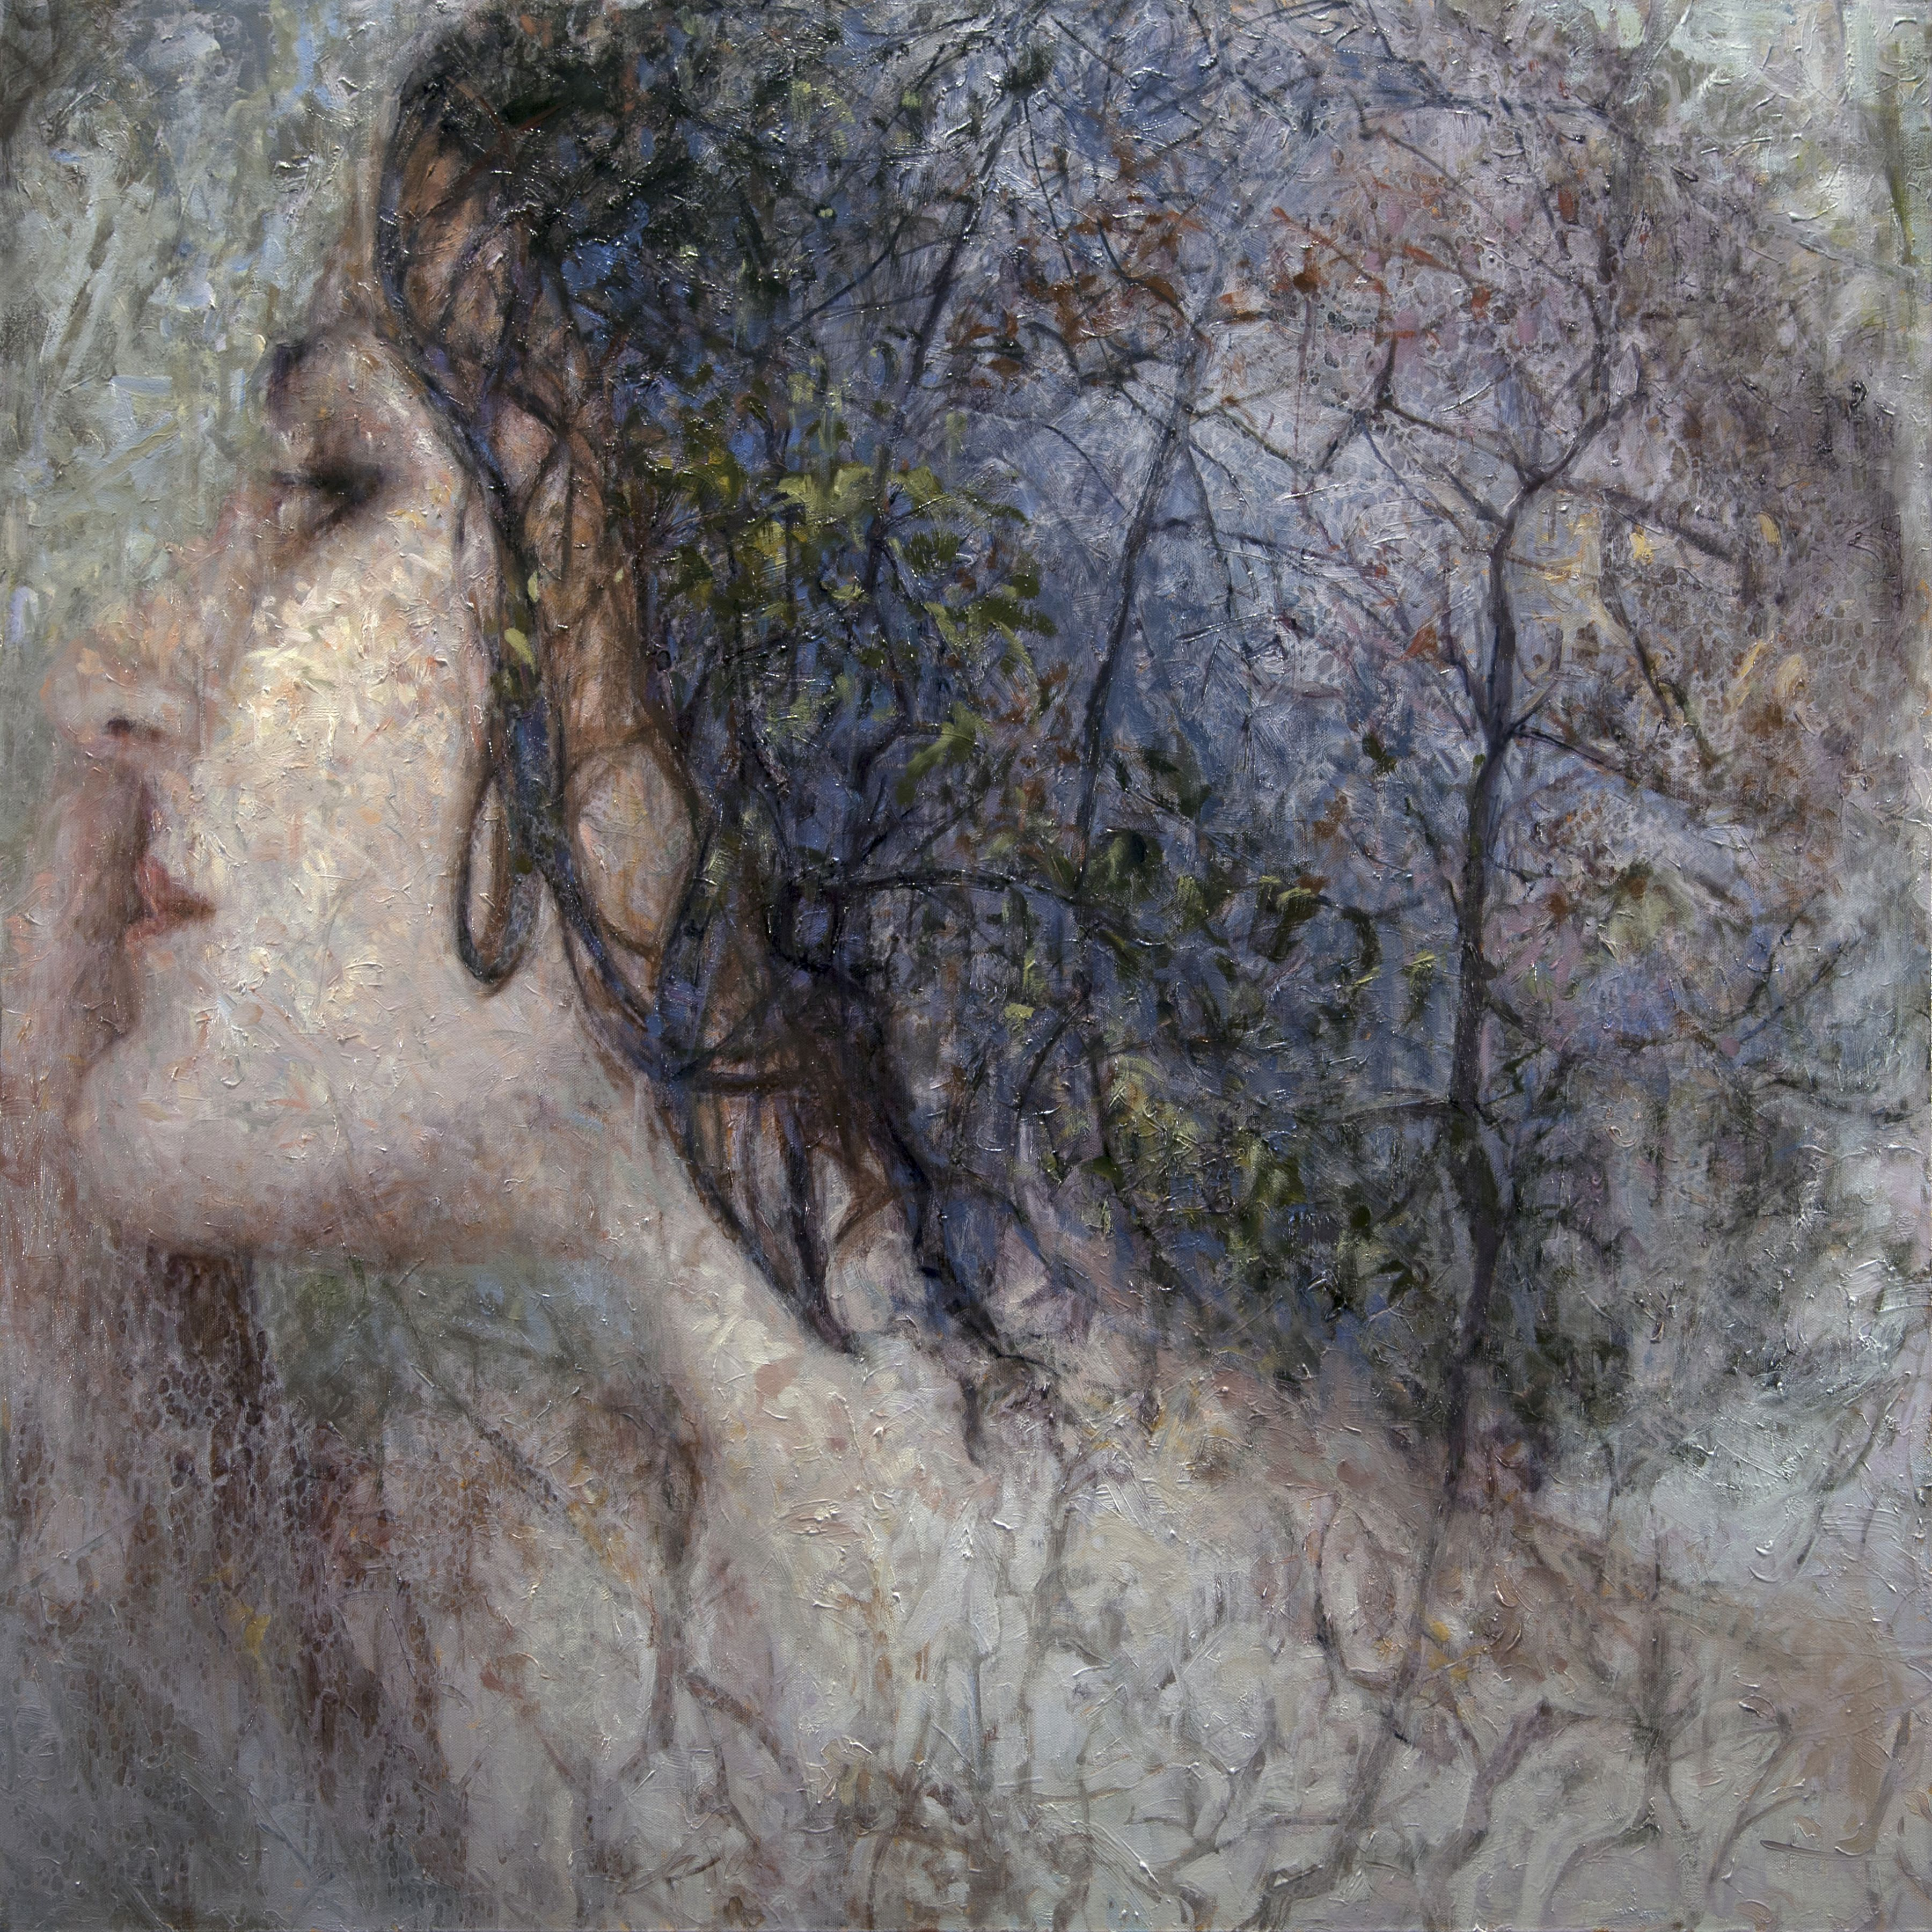 alyssa monks, Assimilate (SOLD), 2015, oil on linen, 56 x 56 inches